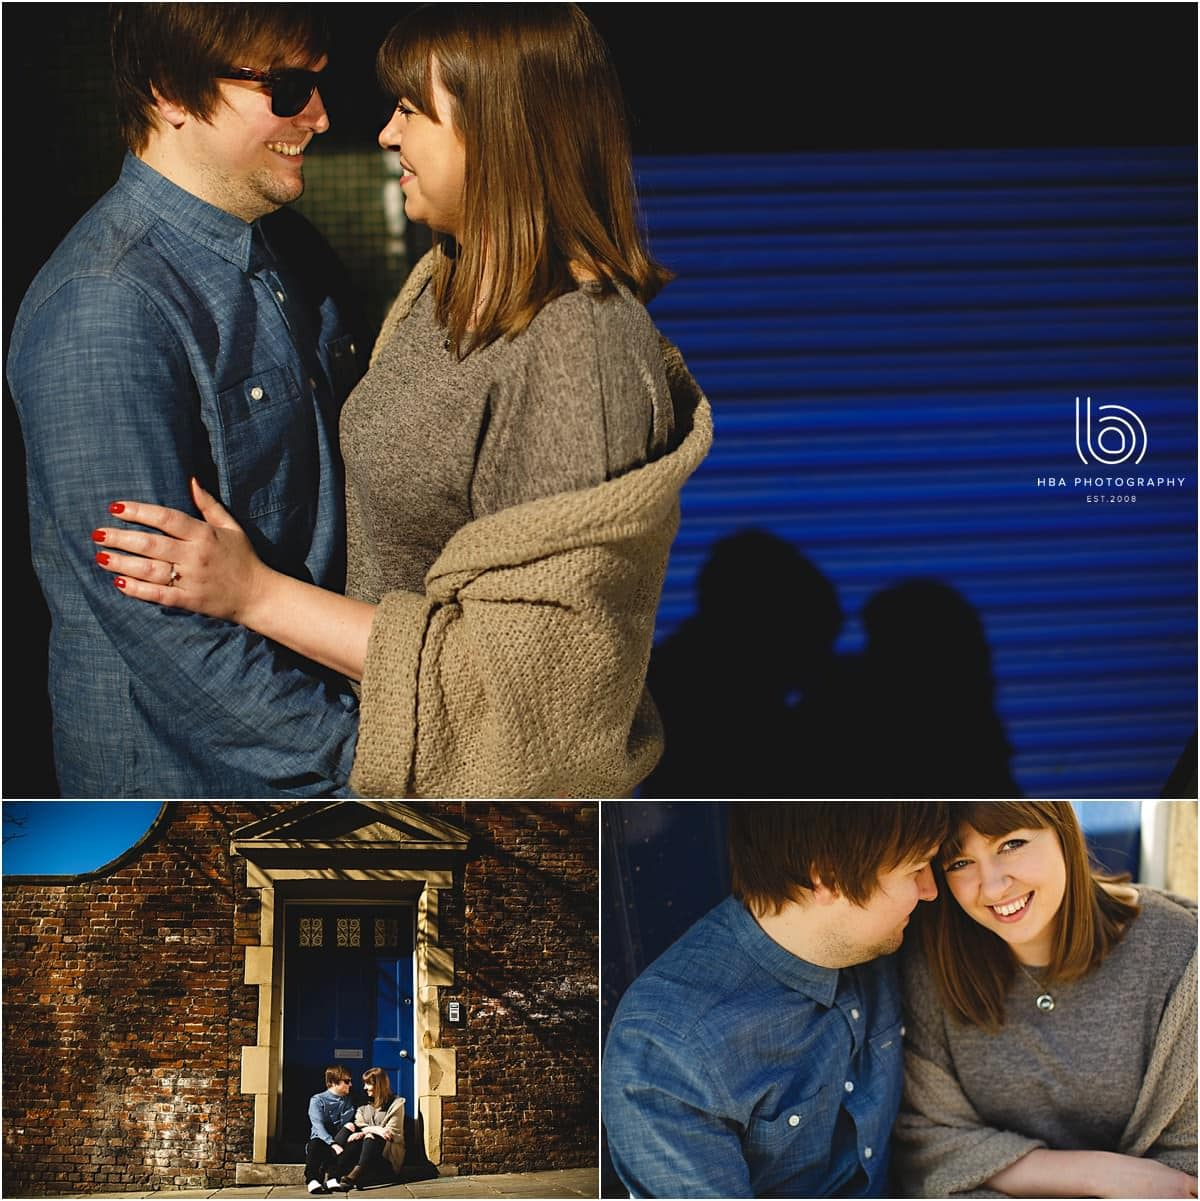 engaged couple looking at each other in front of a blue door